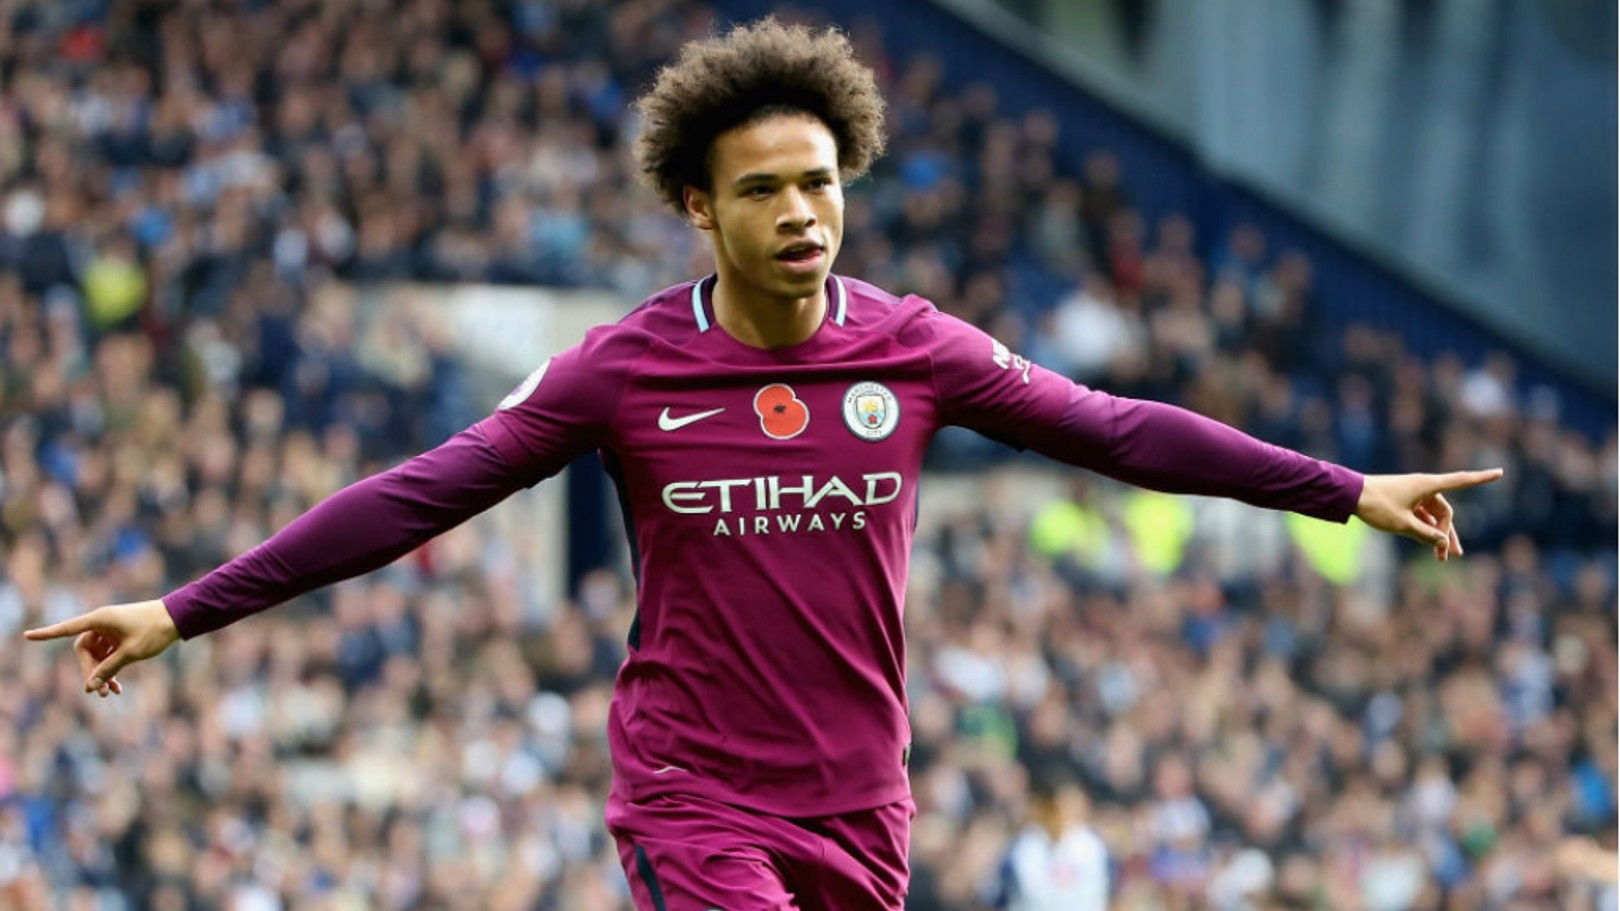 IN FORM: Sane was on the scoresheet again in a 3-2 win at West Brom